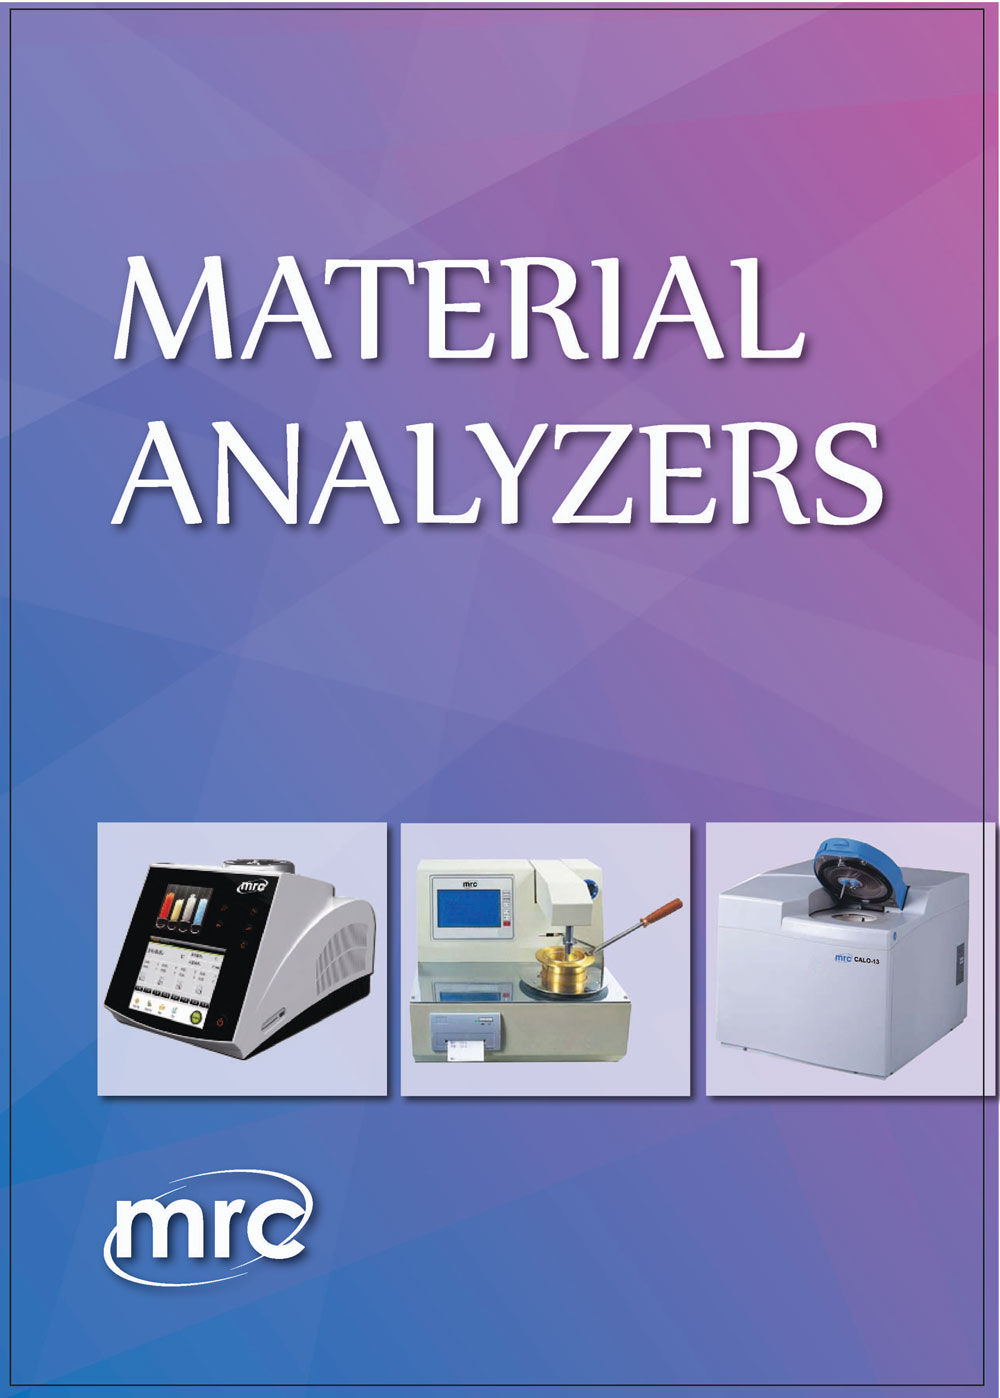 MATERIAL-ANALYZERS_COVER.jpg